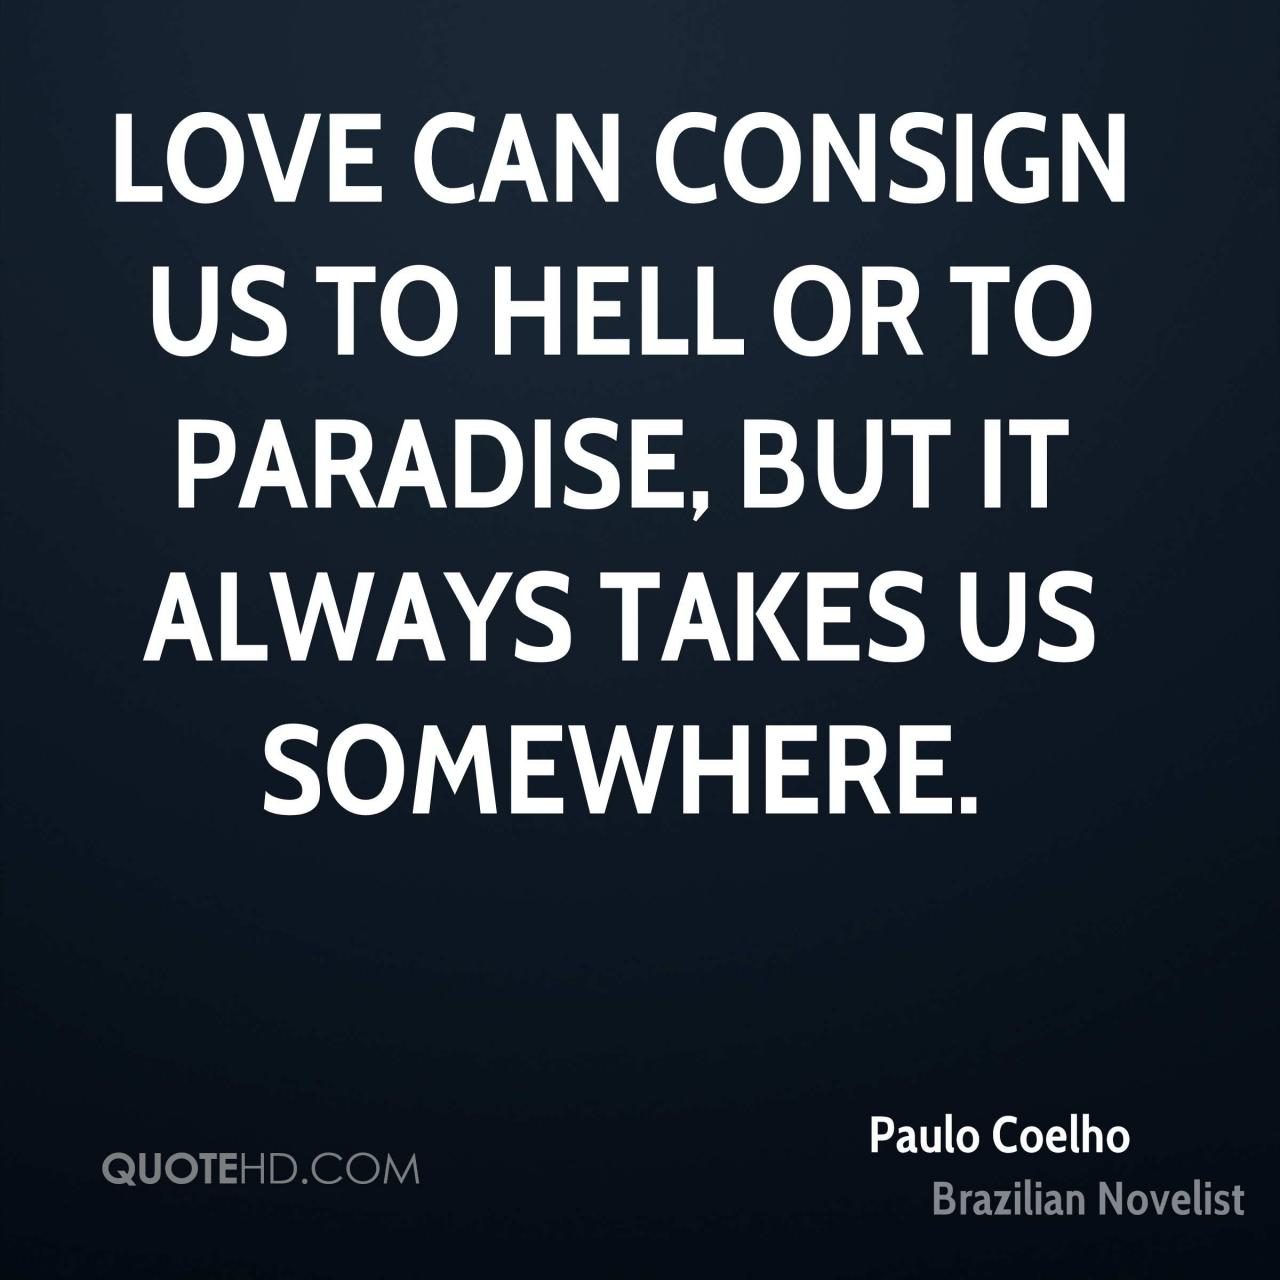 Love Can Consign Us To Or To Paradise But It Always Takes Us Somewhere